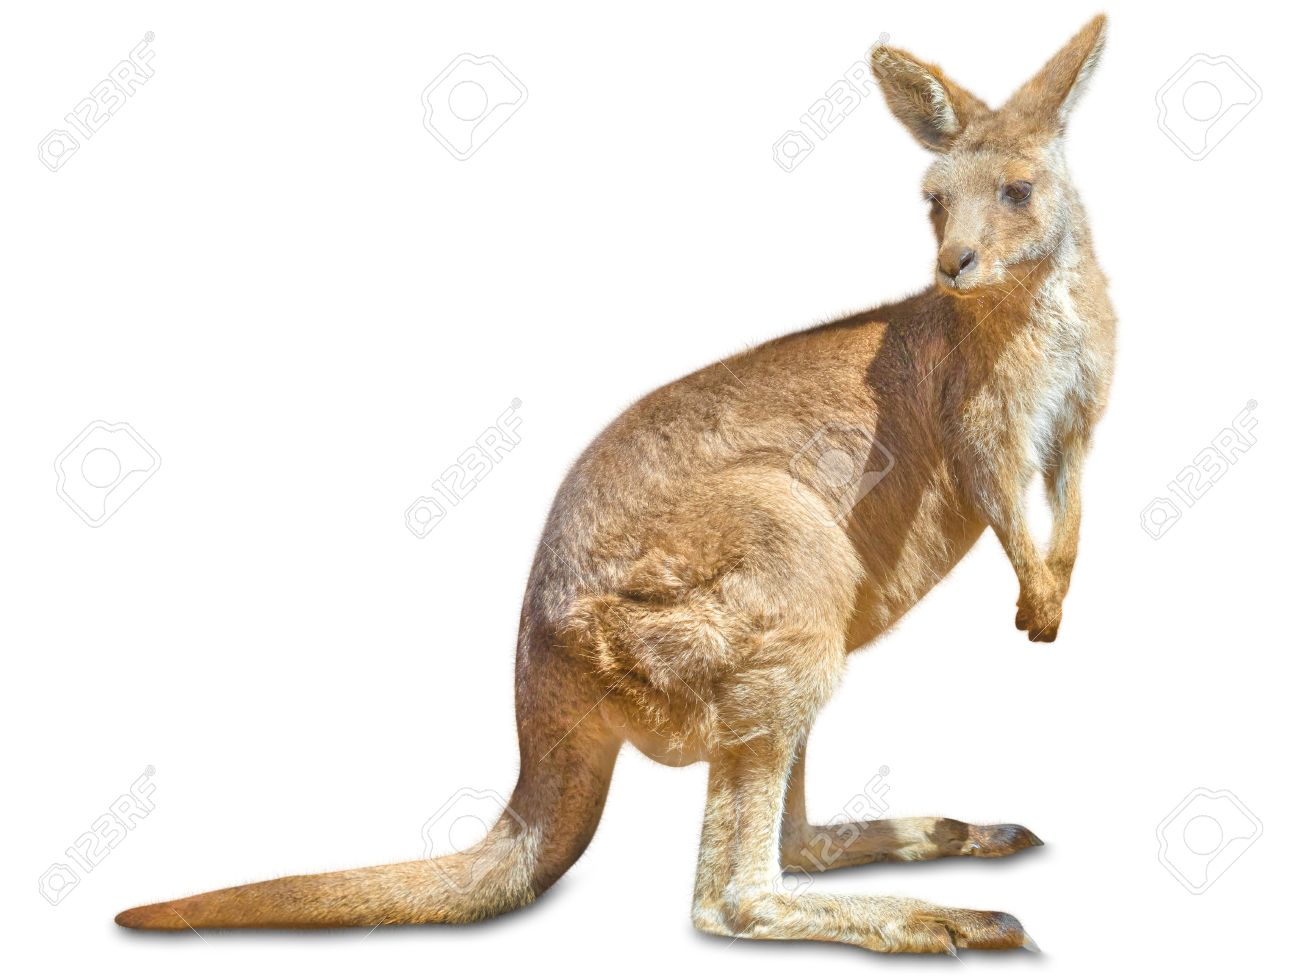 Red australian kangaroo, Macropus rufus, sideways and isolated on white . Stock Photo - 43579527